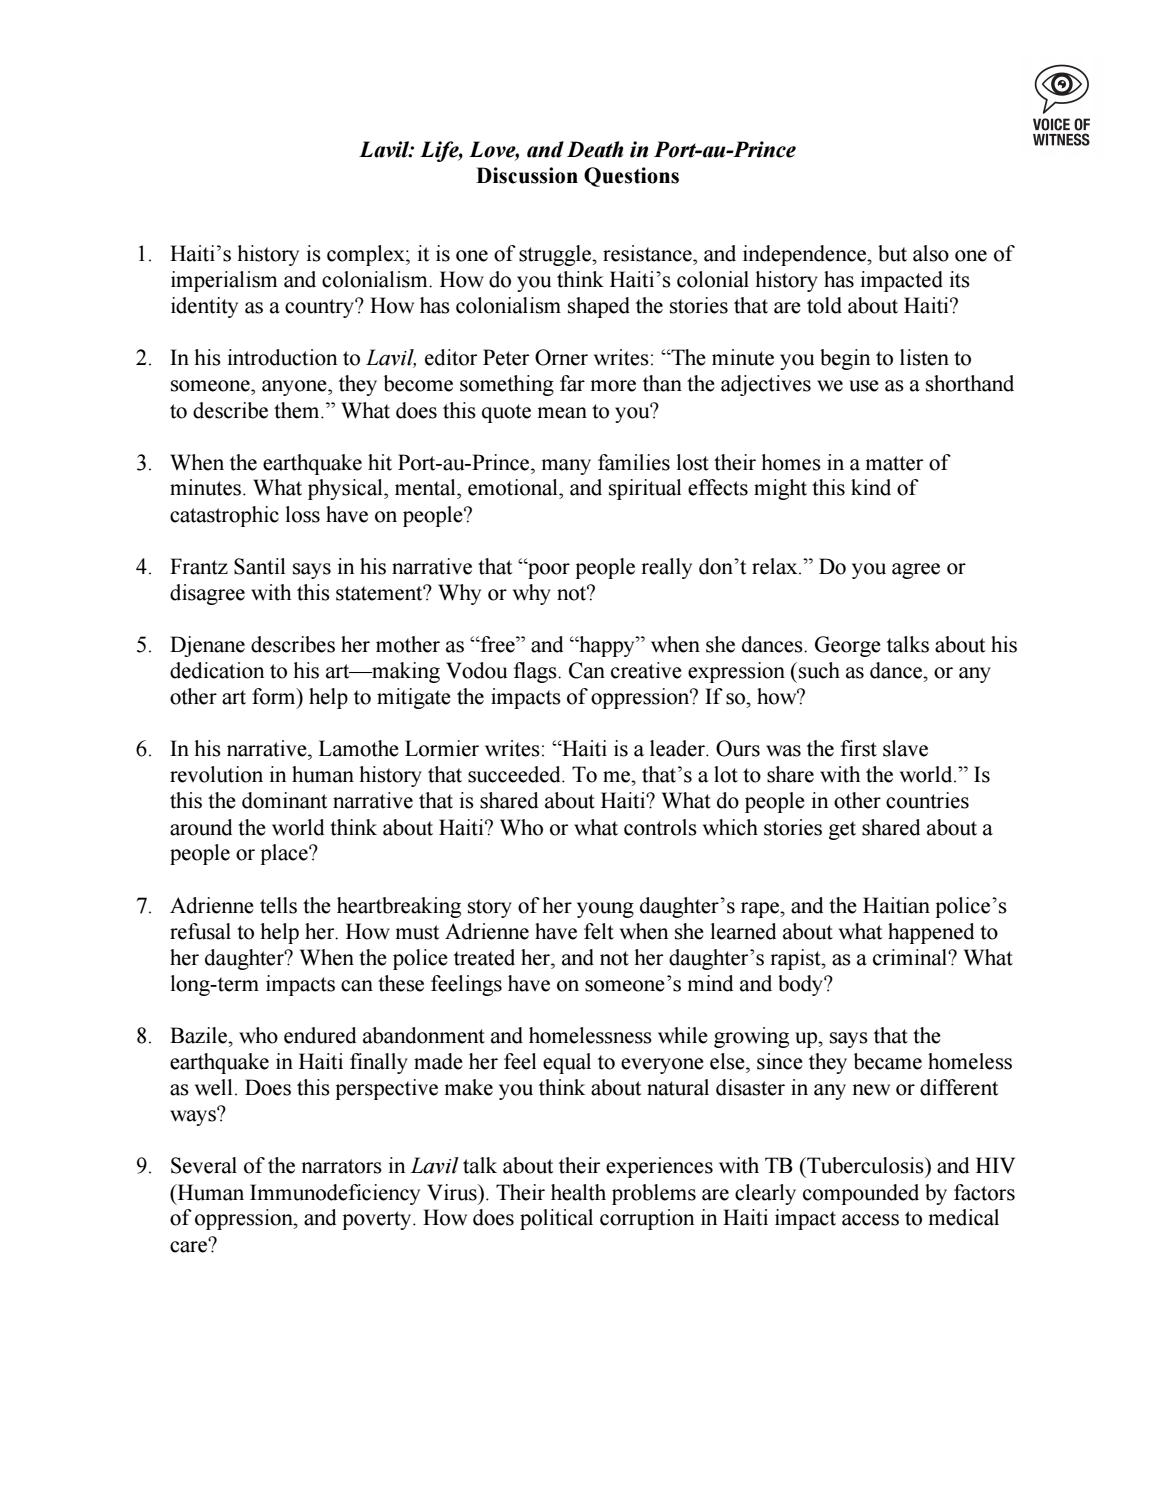 Lavil Discussion Questions By Voice Of Witness Issuu